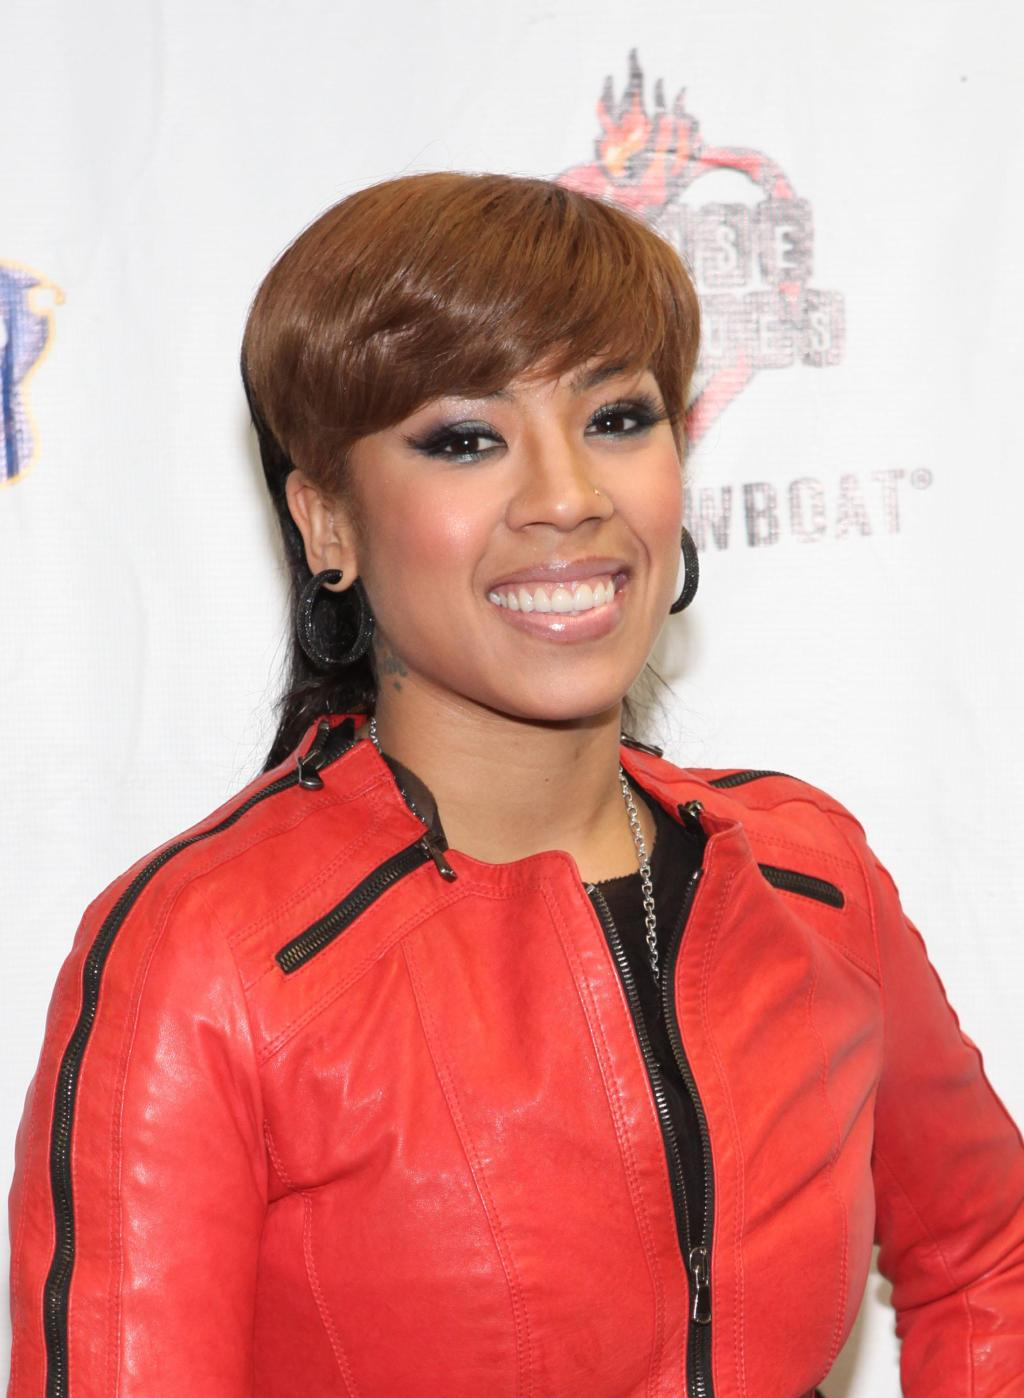 Keyshia Cole In Concert